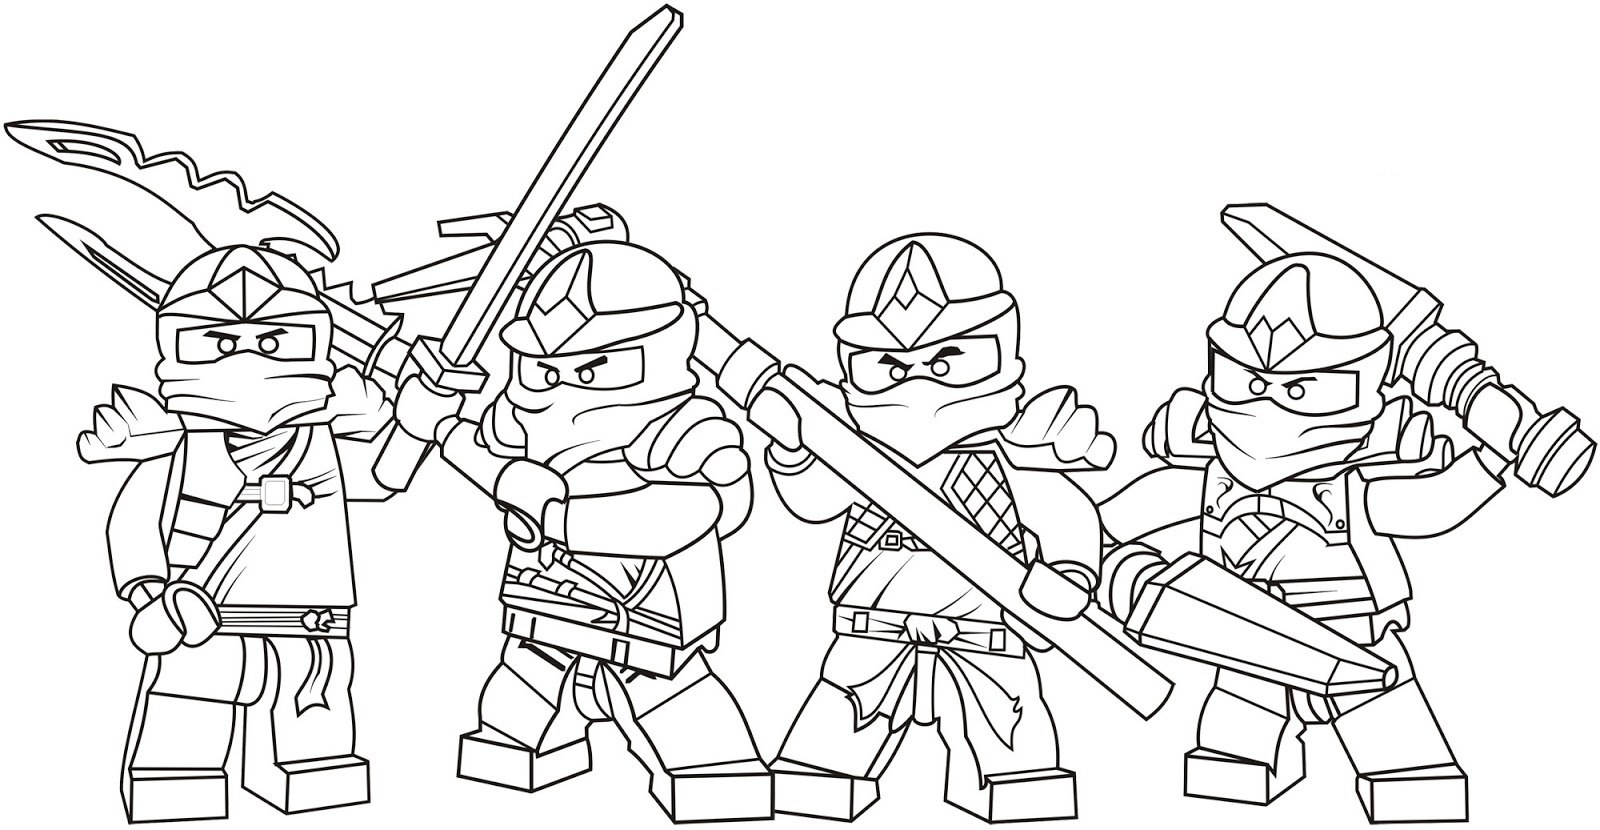 ninjago coloring pages - Ninjago Coloring Pages To Print